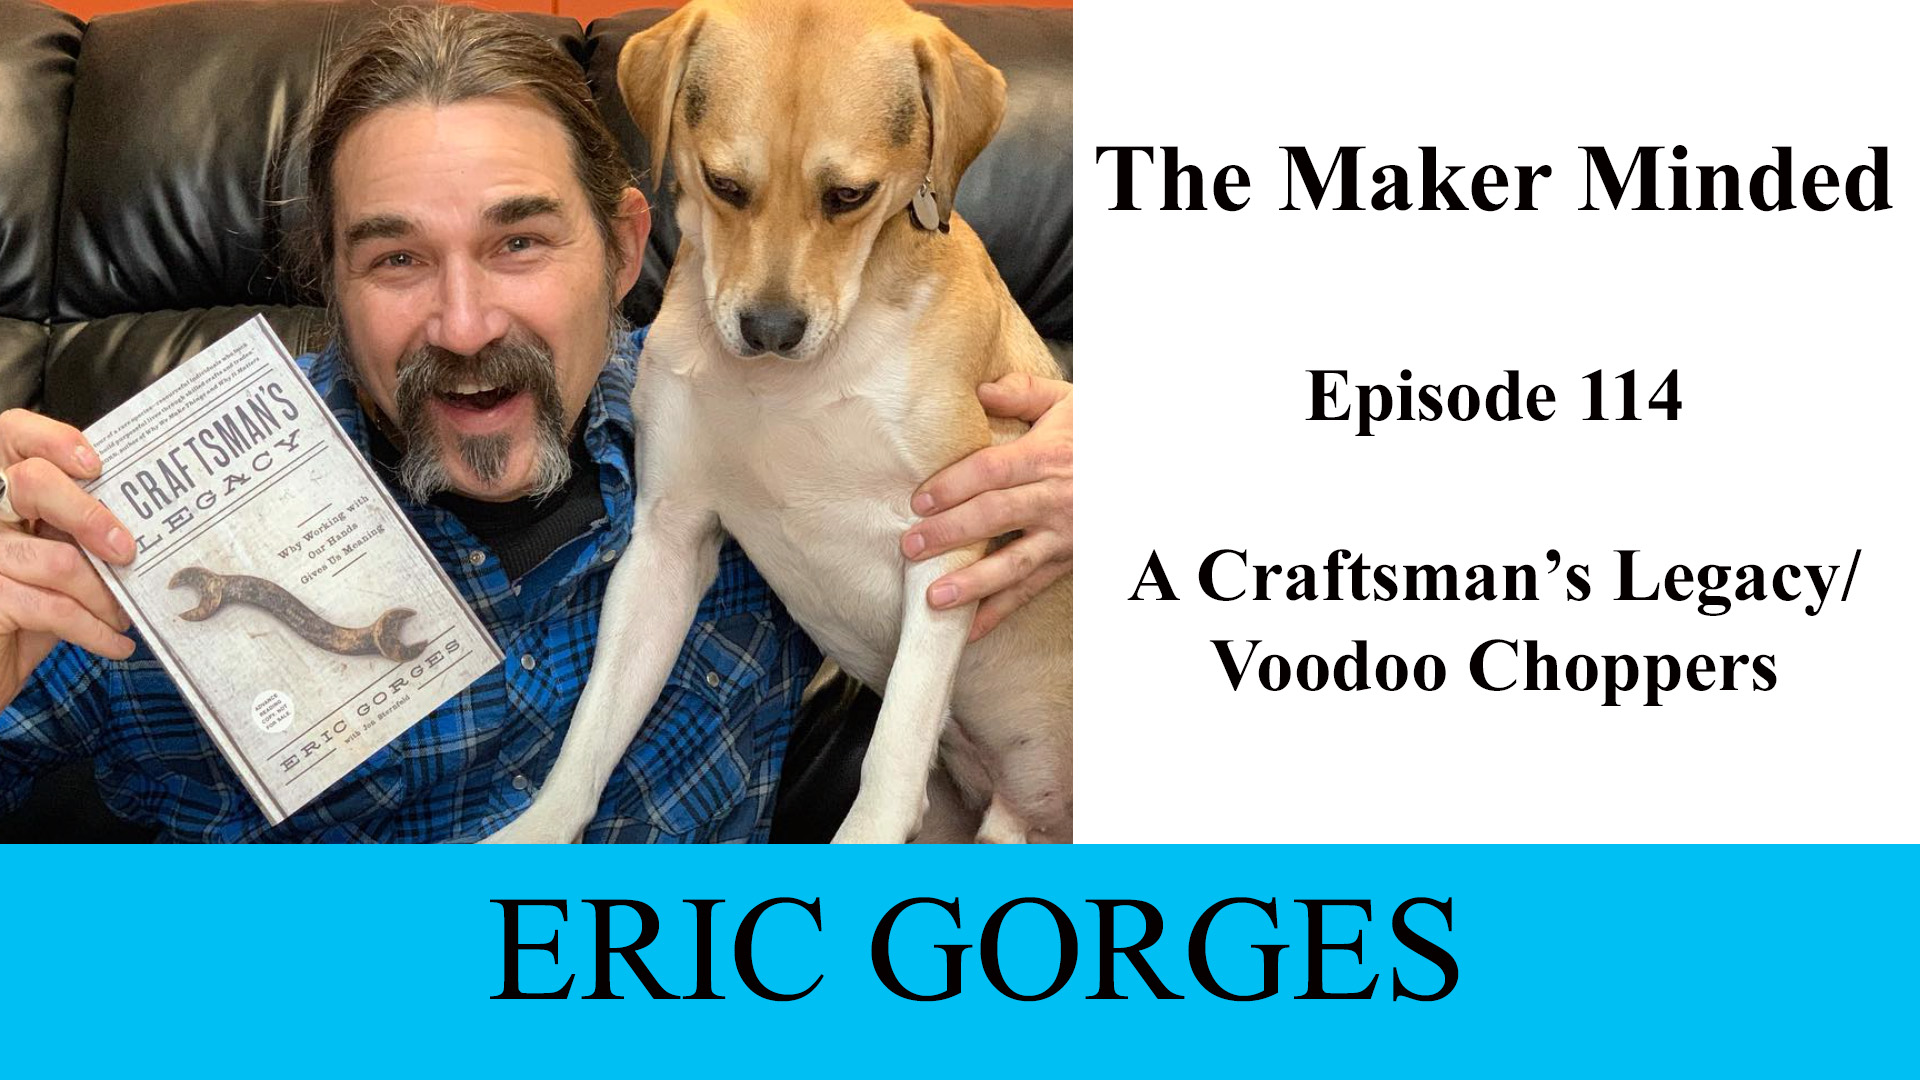 The Maker Minded 115: Eric Gorges | A Craftsman's Legacy